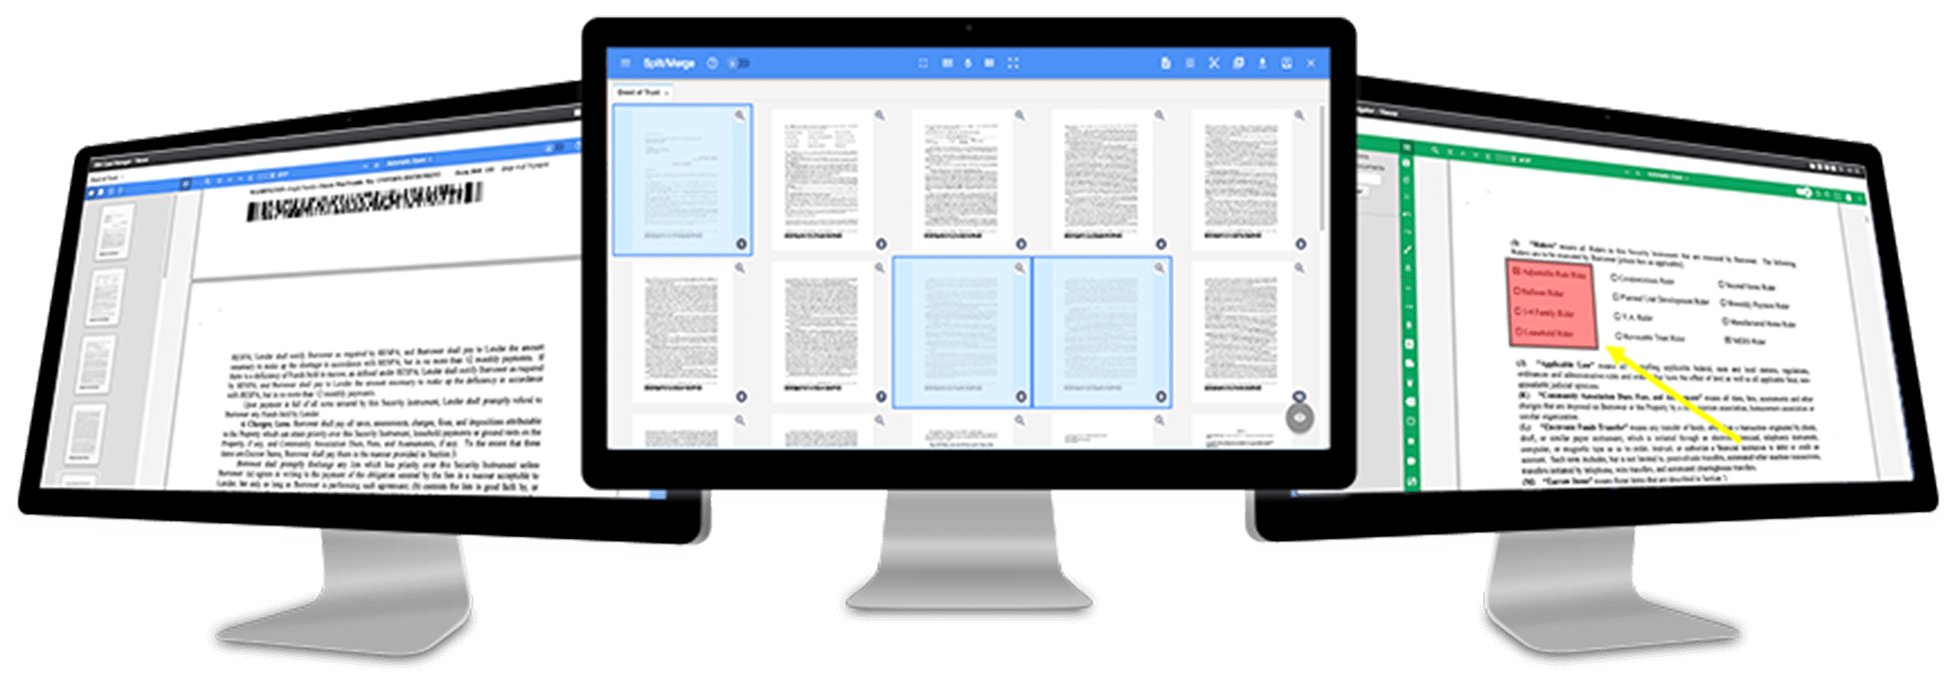 IBM FileNet document viewer